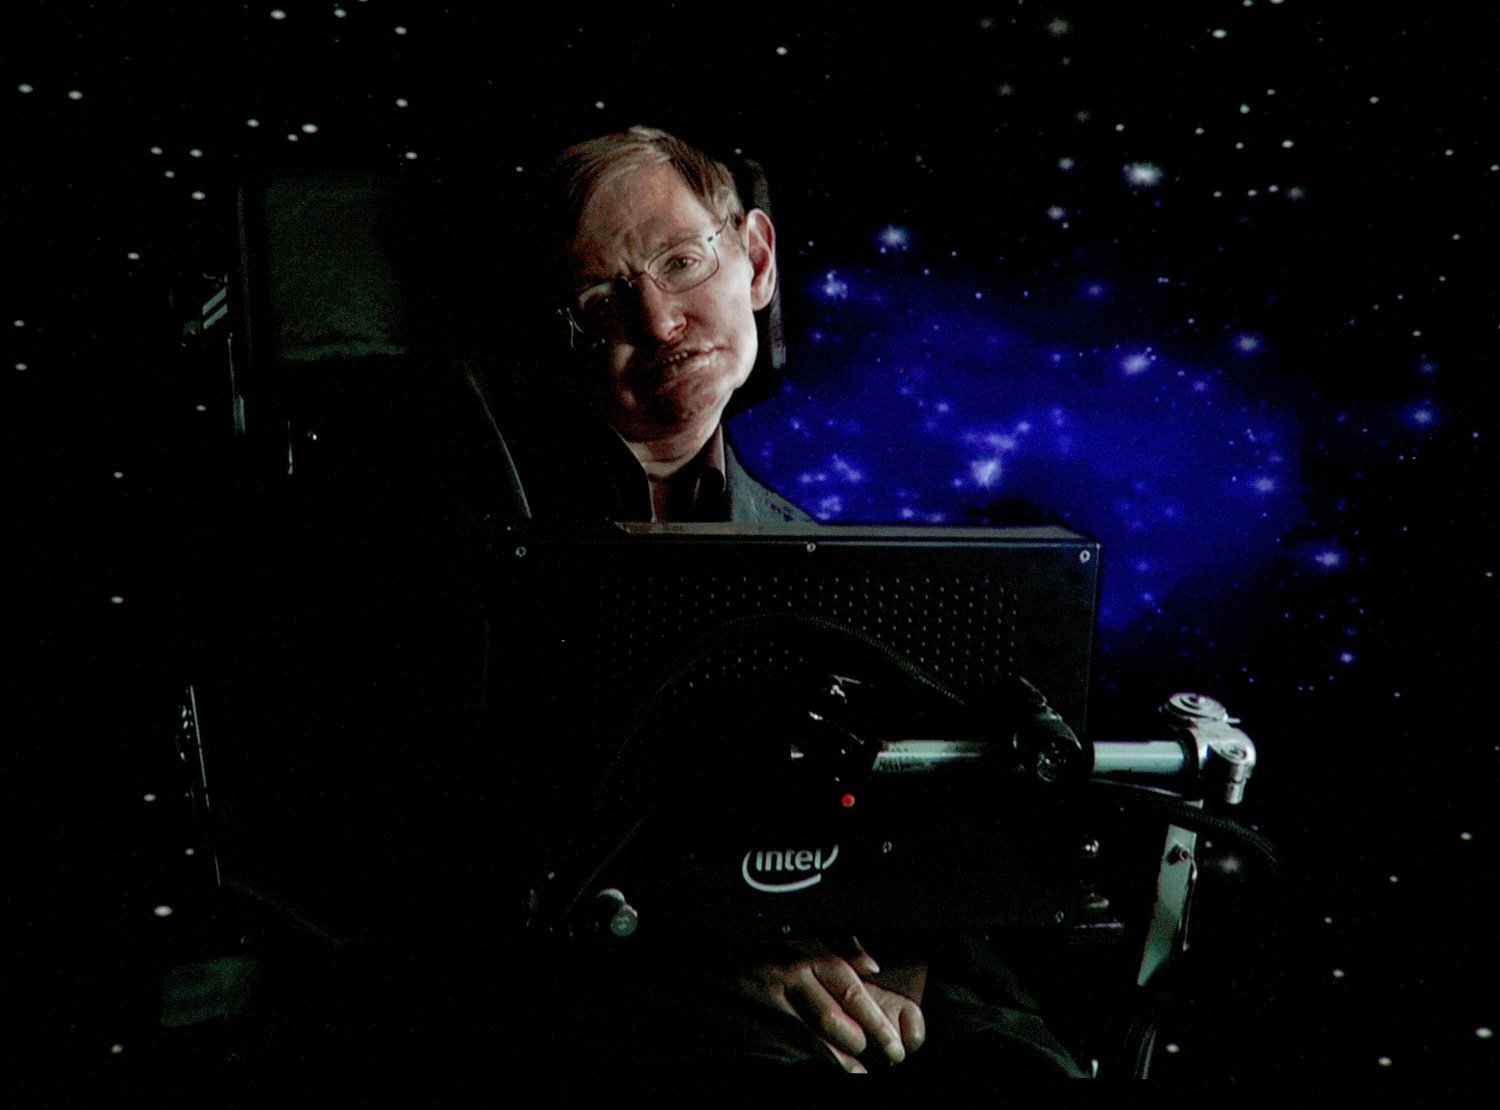 Stephen Hawking Says 'There Is No God,' In Final Book